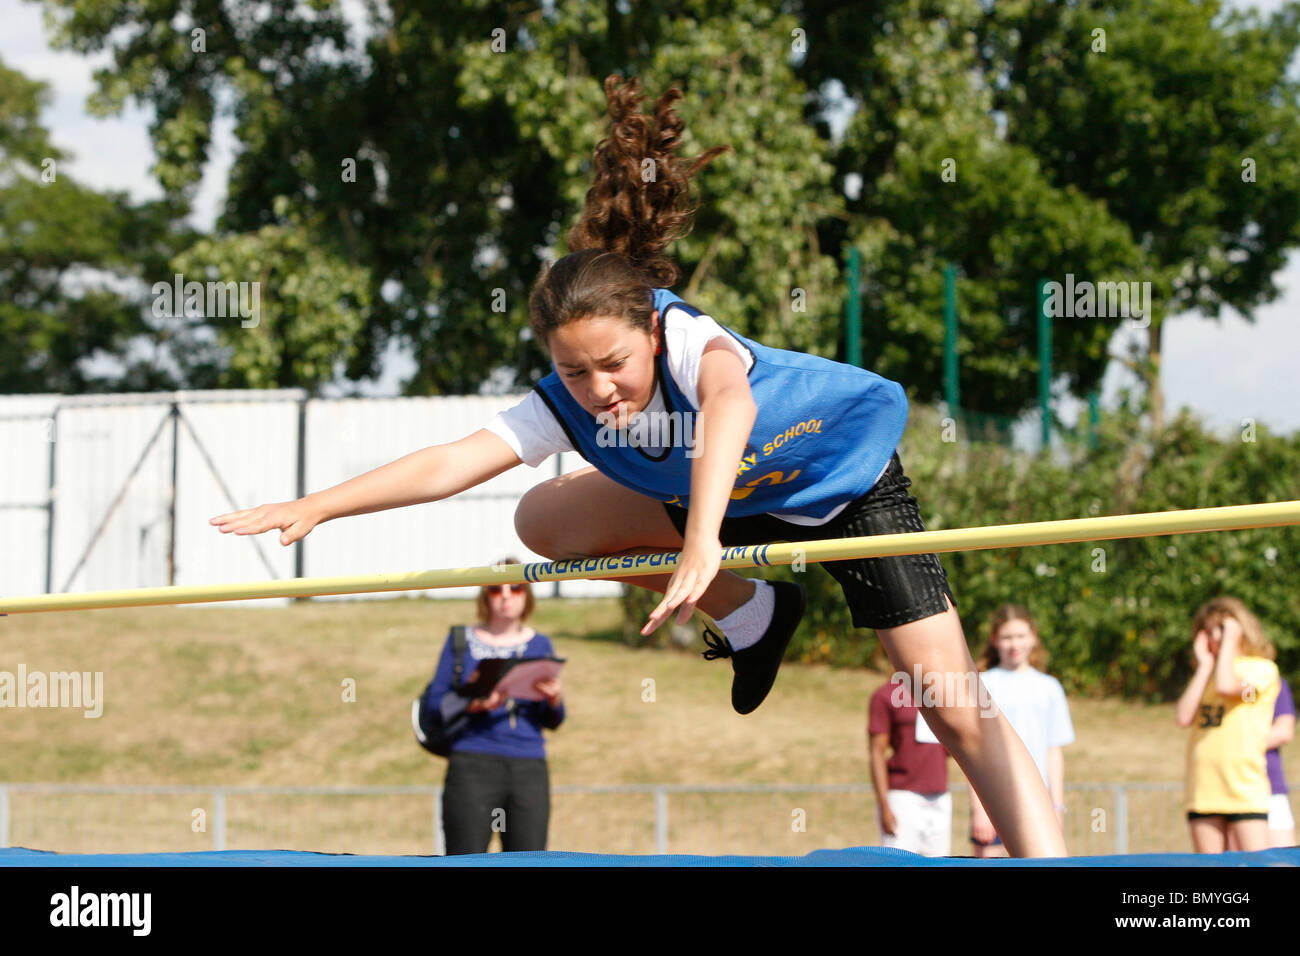 11-12 year olds compete in the Croydon primary schools' athletics championships at Croydon Arena - Stock Image